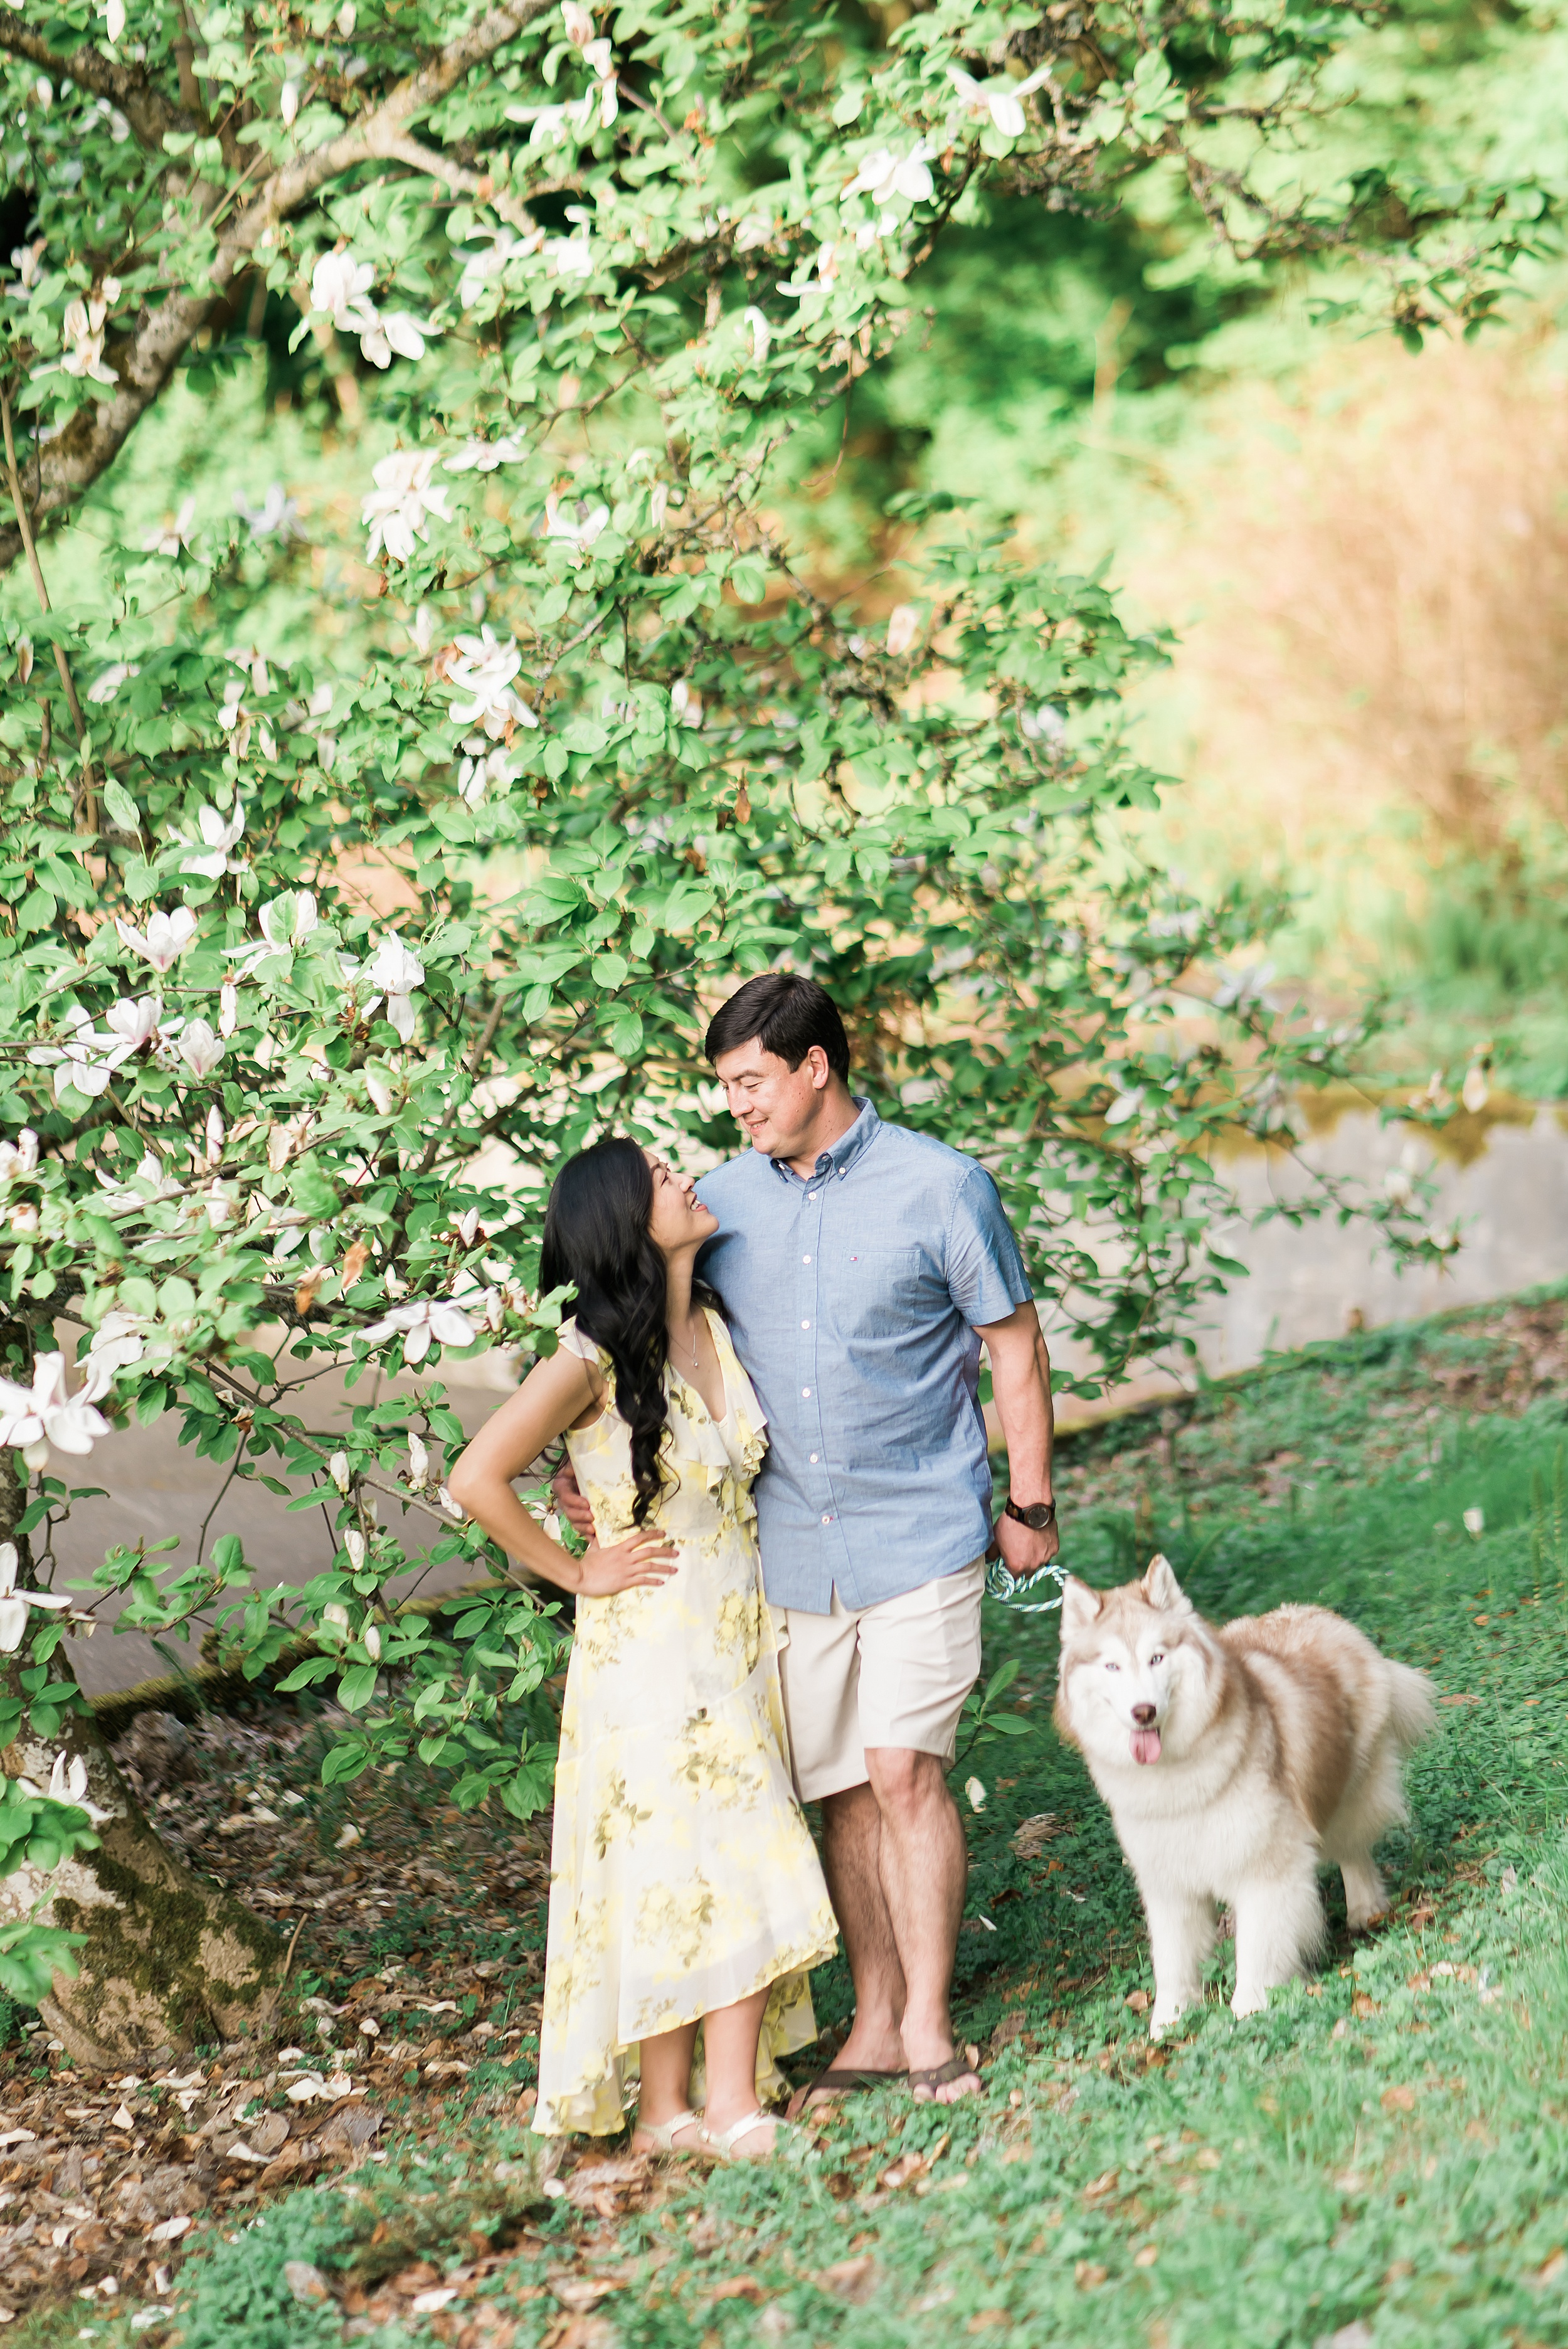 Woodstock Farm Engagement wedding photos